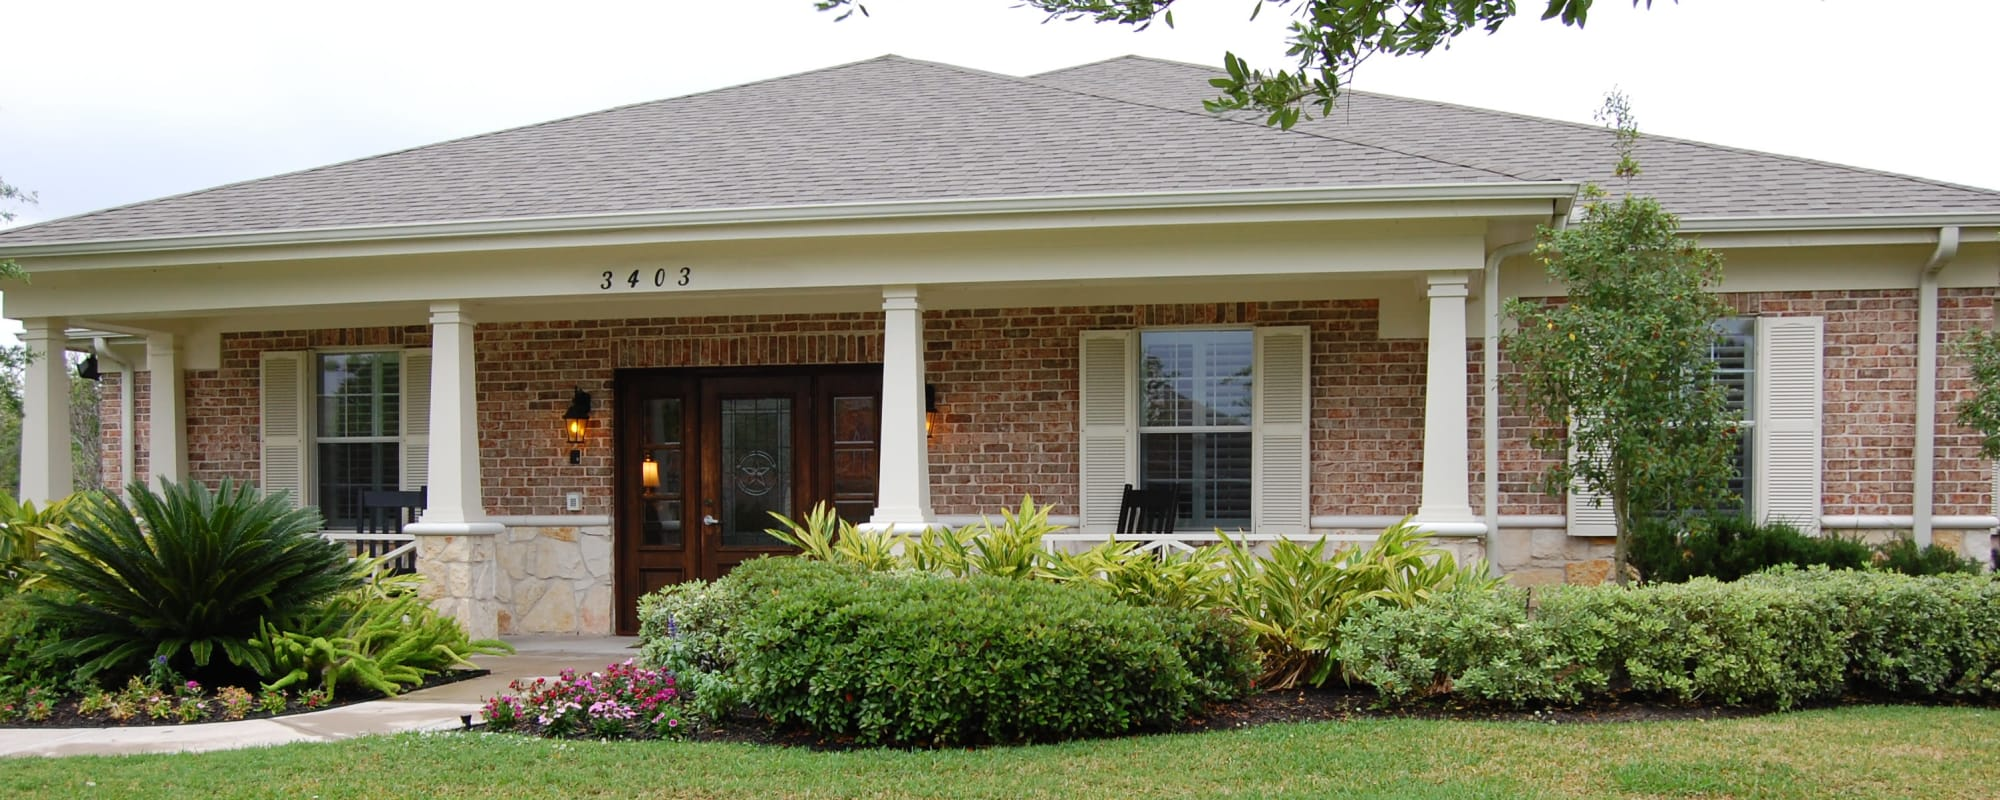 Meet the Team at Autumn Grove Cottage at Pearland in Manvel, Texas